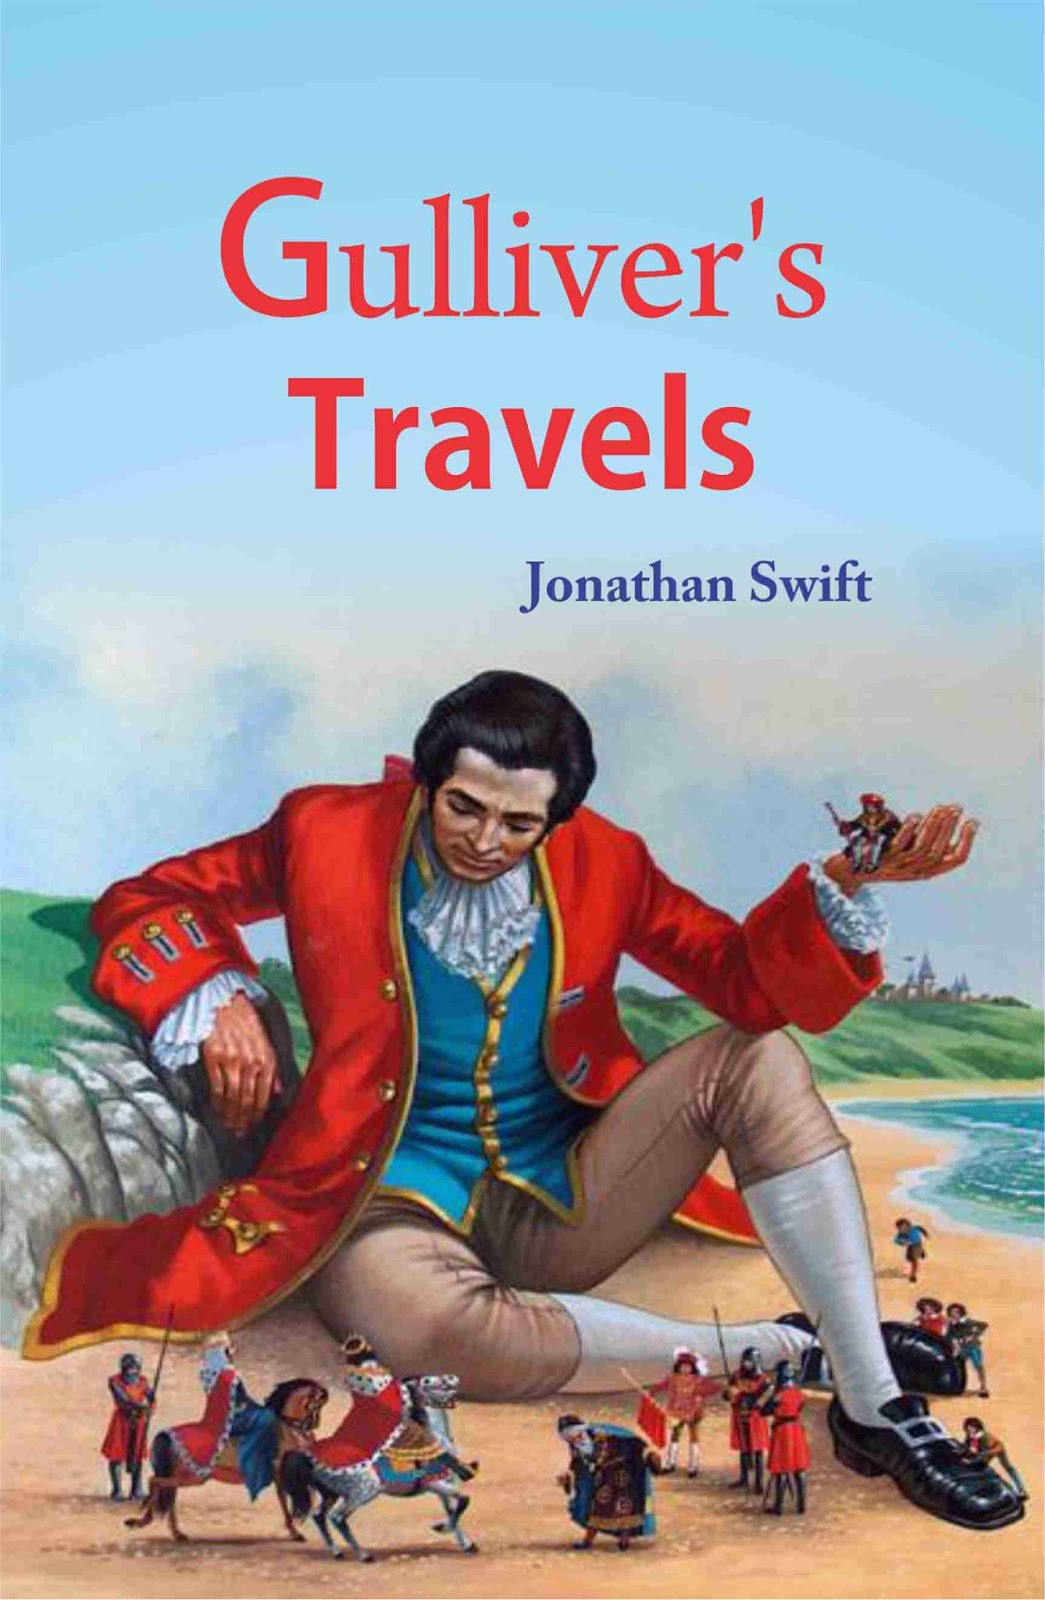 Text Analysis - Passage from Jonathan Swift's Gulliver's Travels